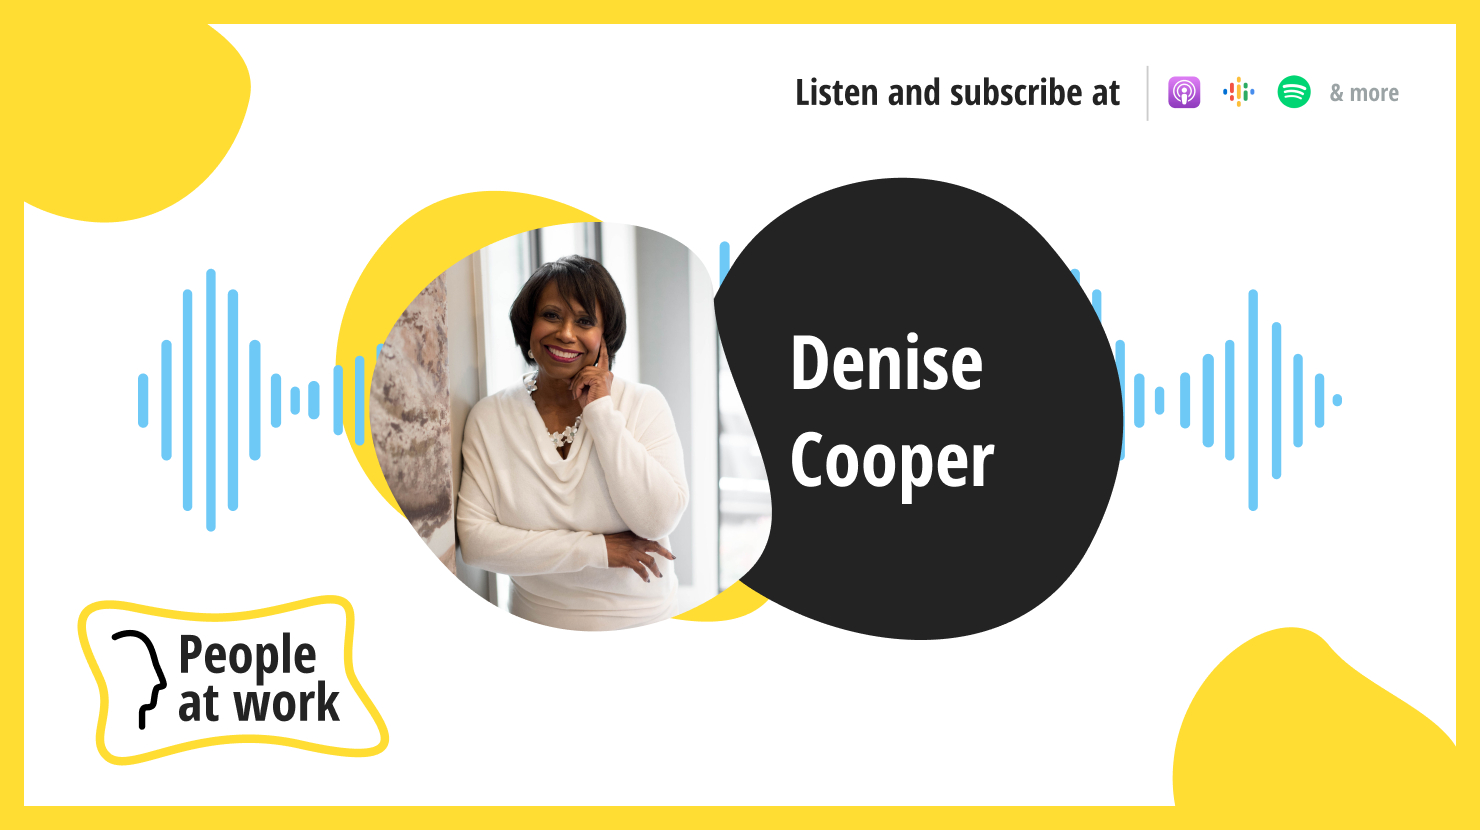 Career management has changed with Denise Cooper